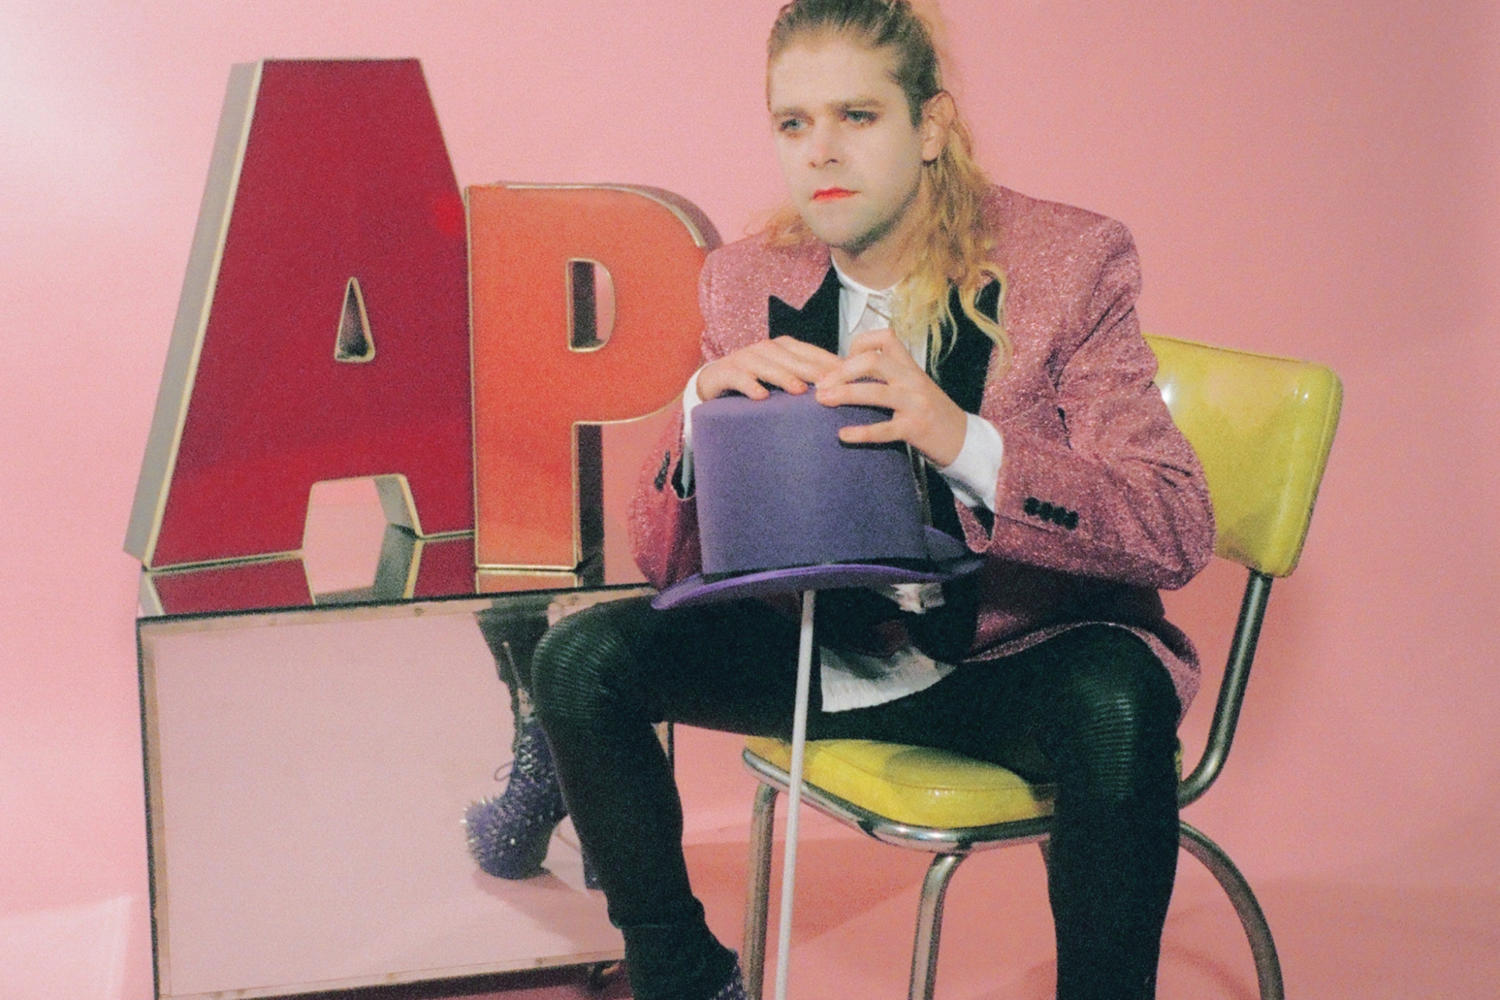 Ariel Pink hangs out in toilets for the 'I Need a Minute' video